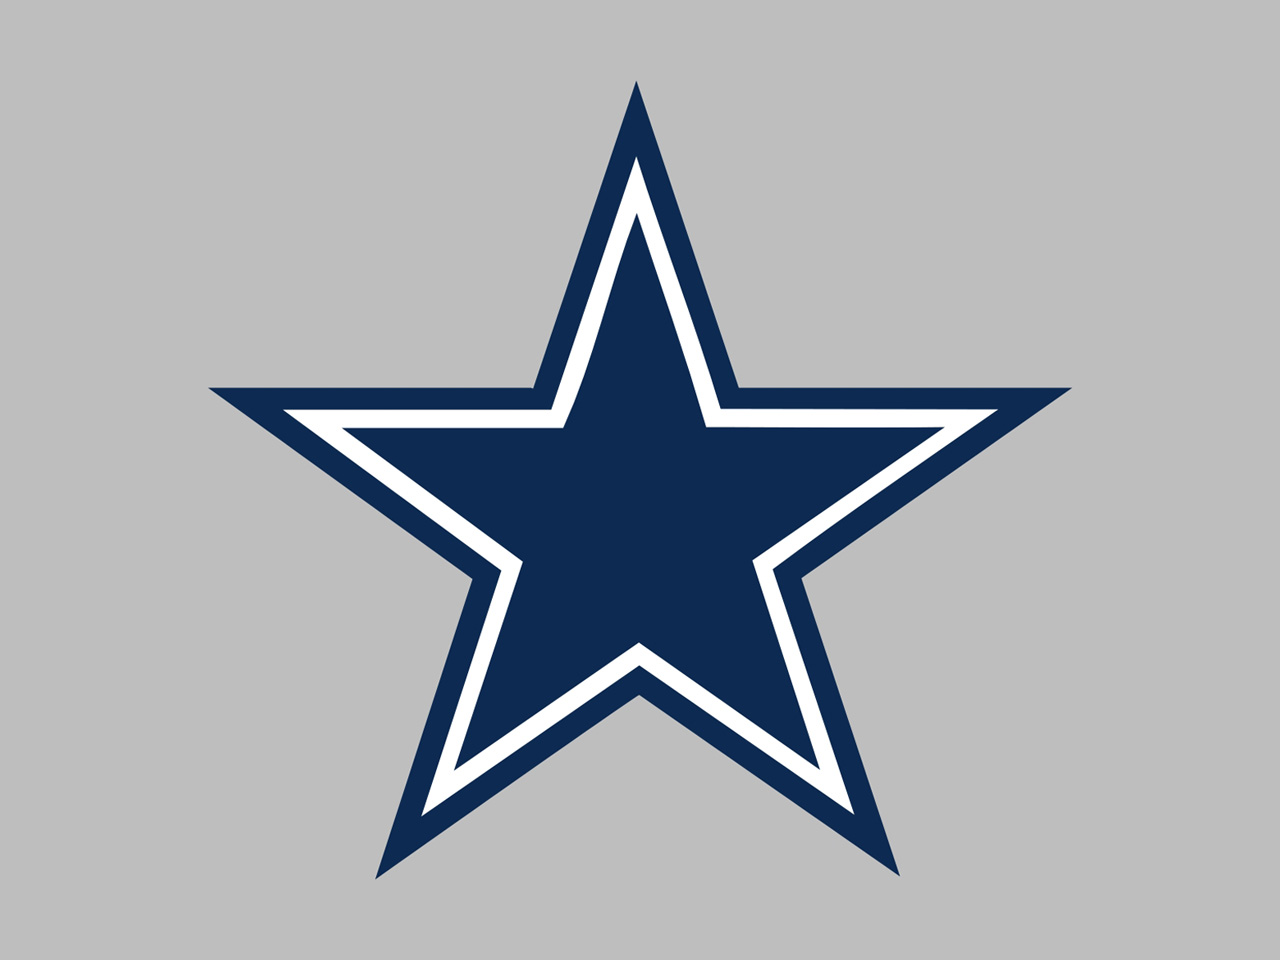 Do you have any favorite Dallas Cowboys desktop wallpapers we should add to